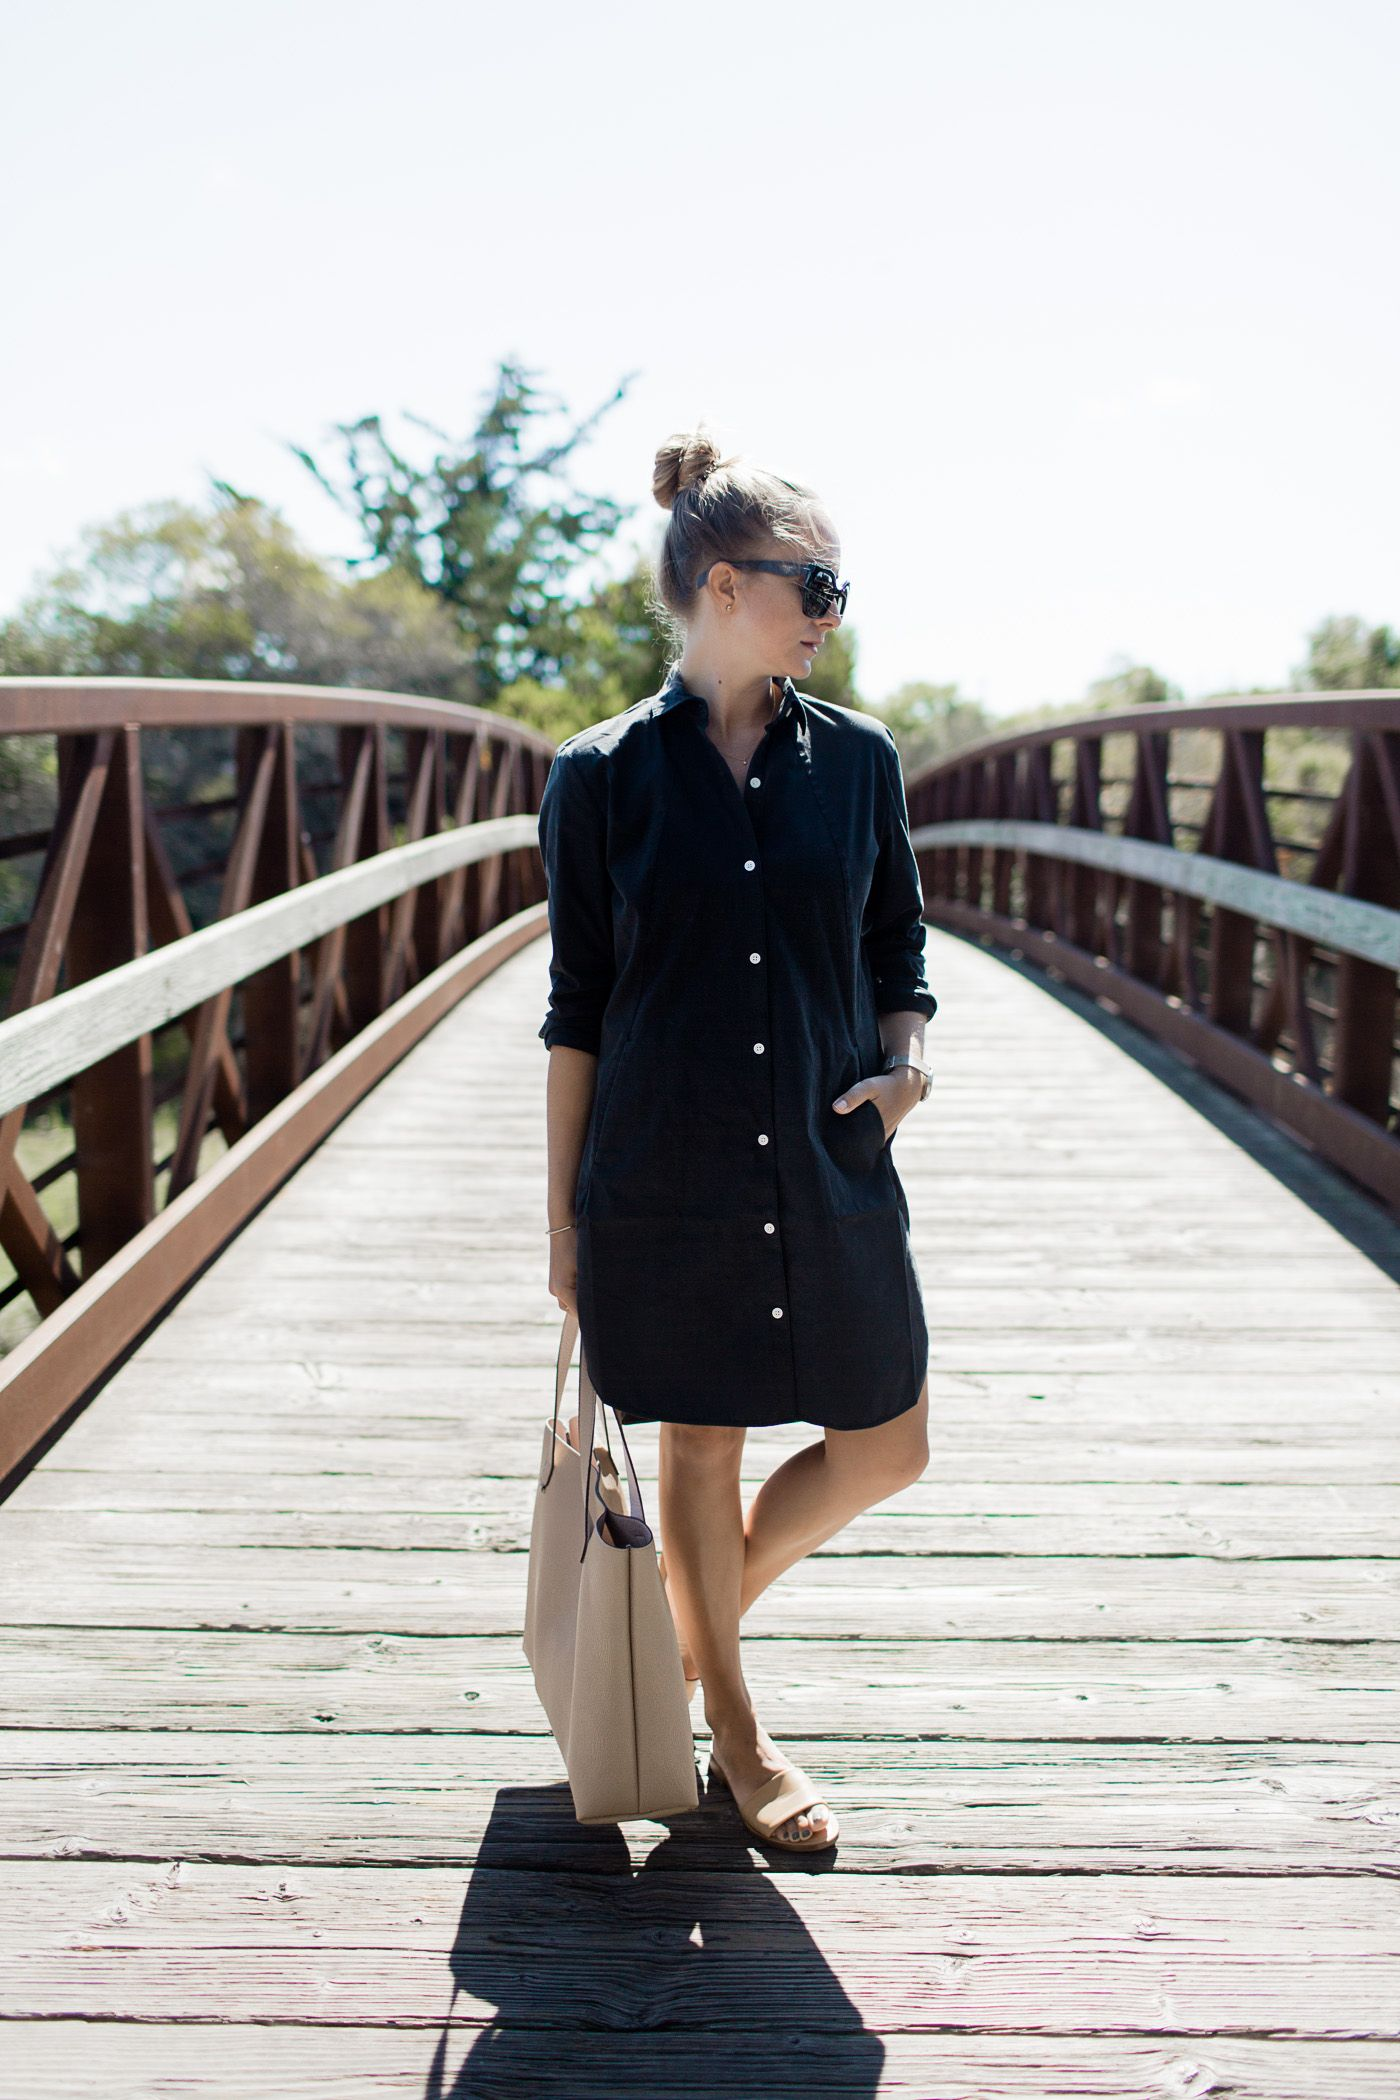 Favorite Black Shirtdress Outfit Style Wear In 2018 Pinterest Jfashion Plaid Long Tunik Camelia Merah Monochrome Fashion Dress Outfits Dresses